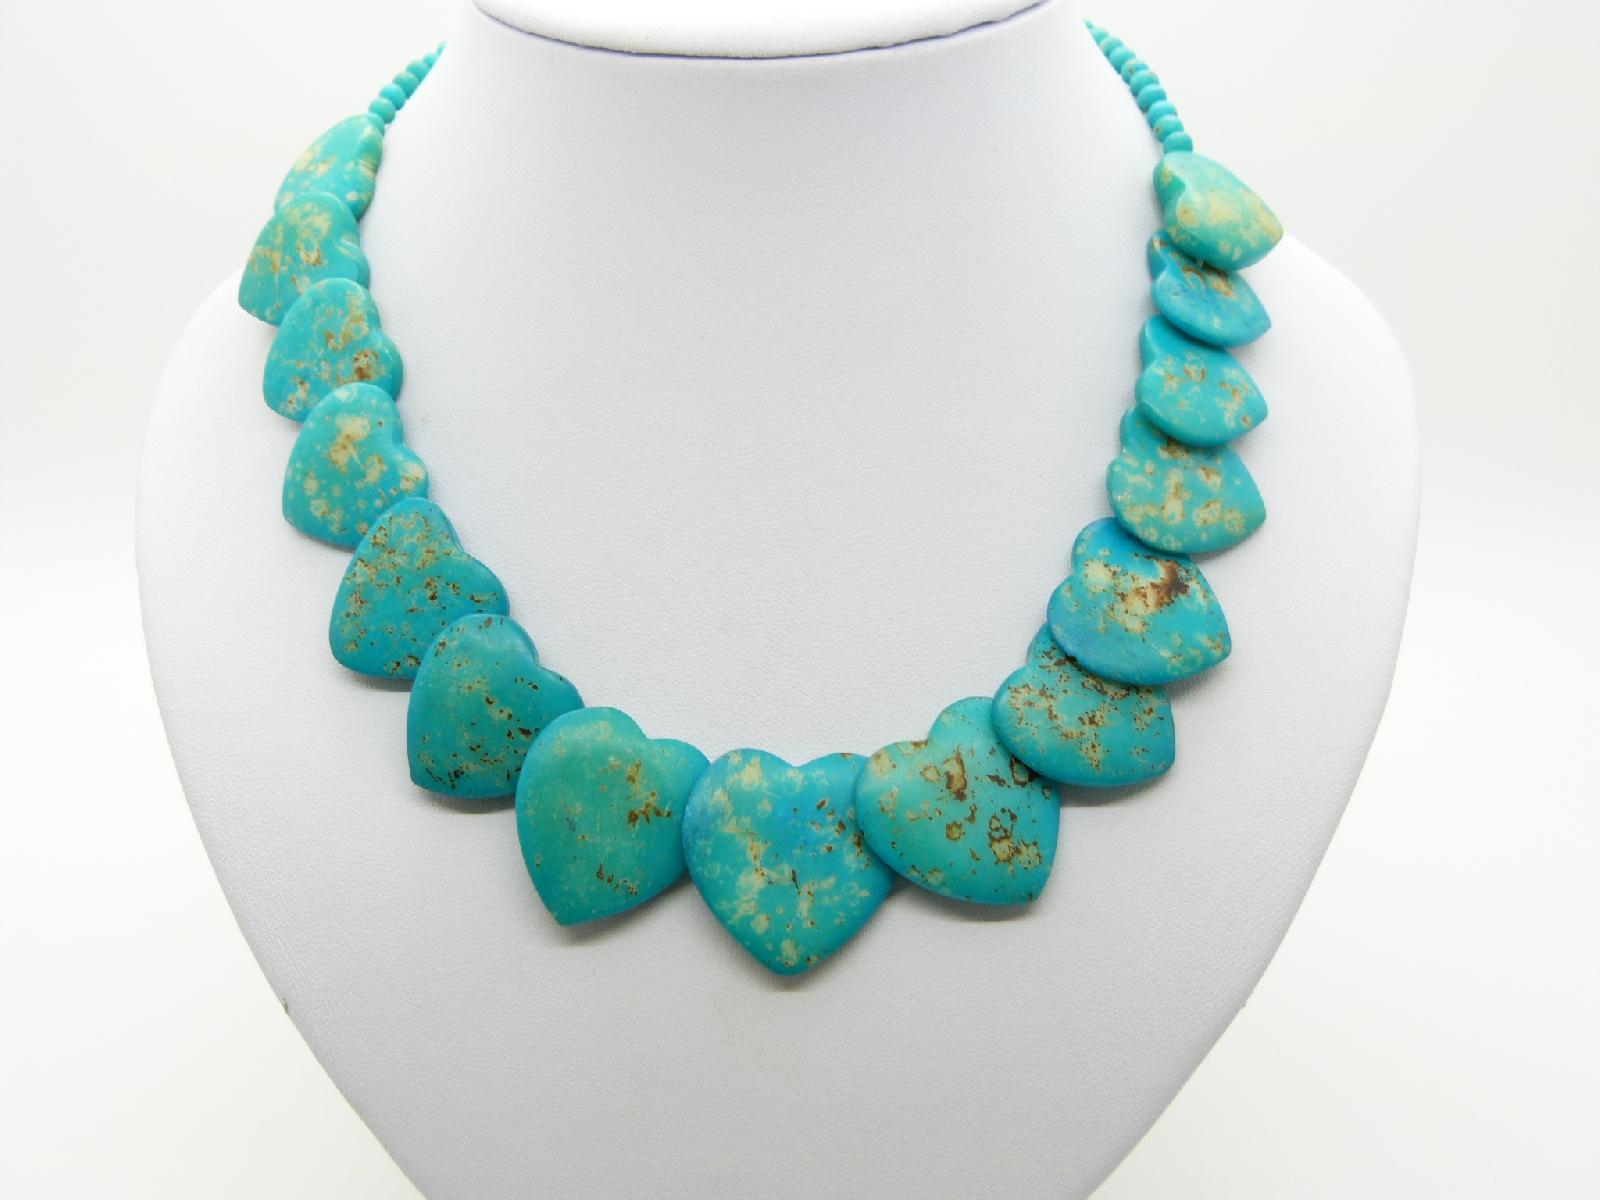 Fab Imperial Turquoise Jasper Faceted Stone Heart Shaped Bead Necklace